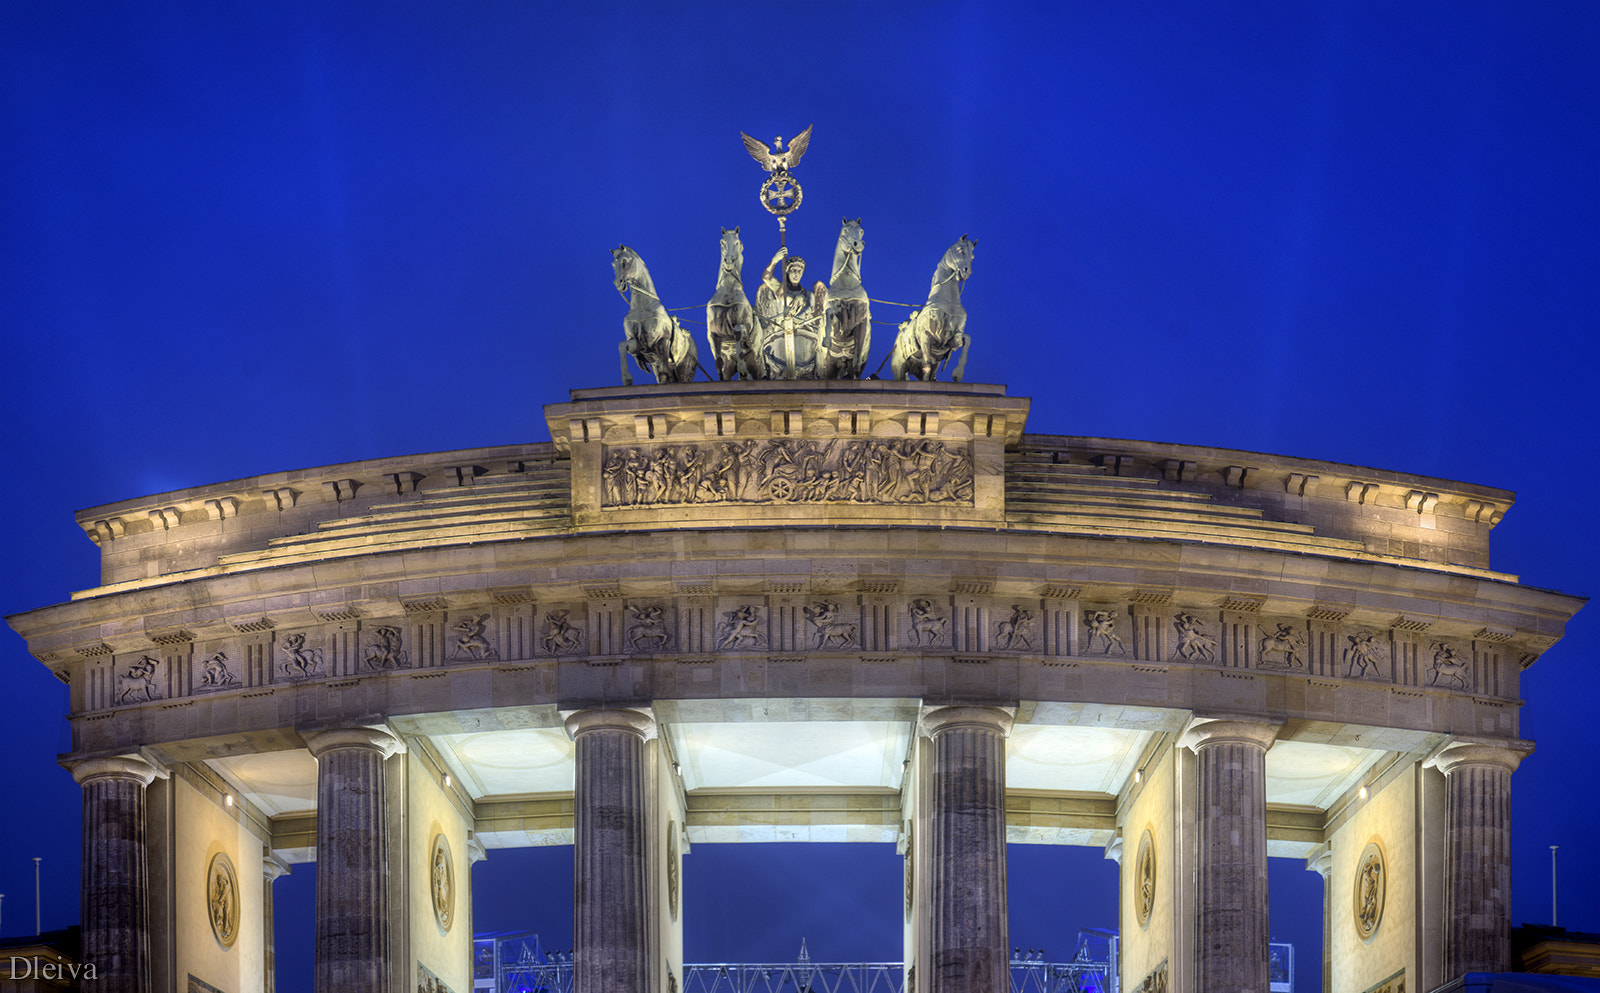 Photograph Puerta de Brandemburgo (Berlin) by Domingo Leiva on 500px